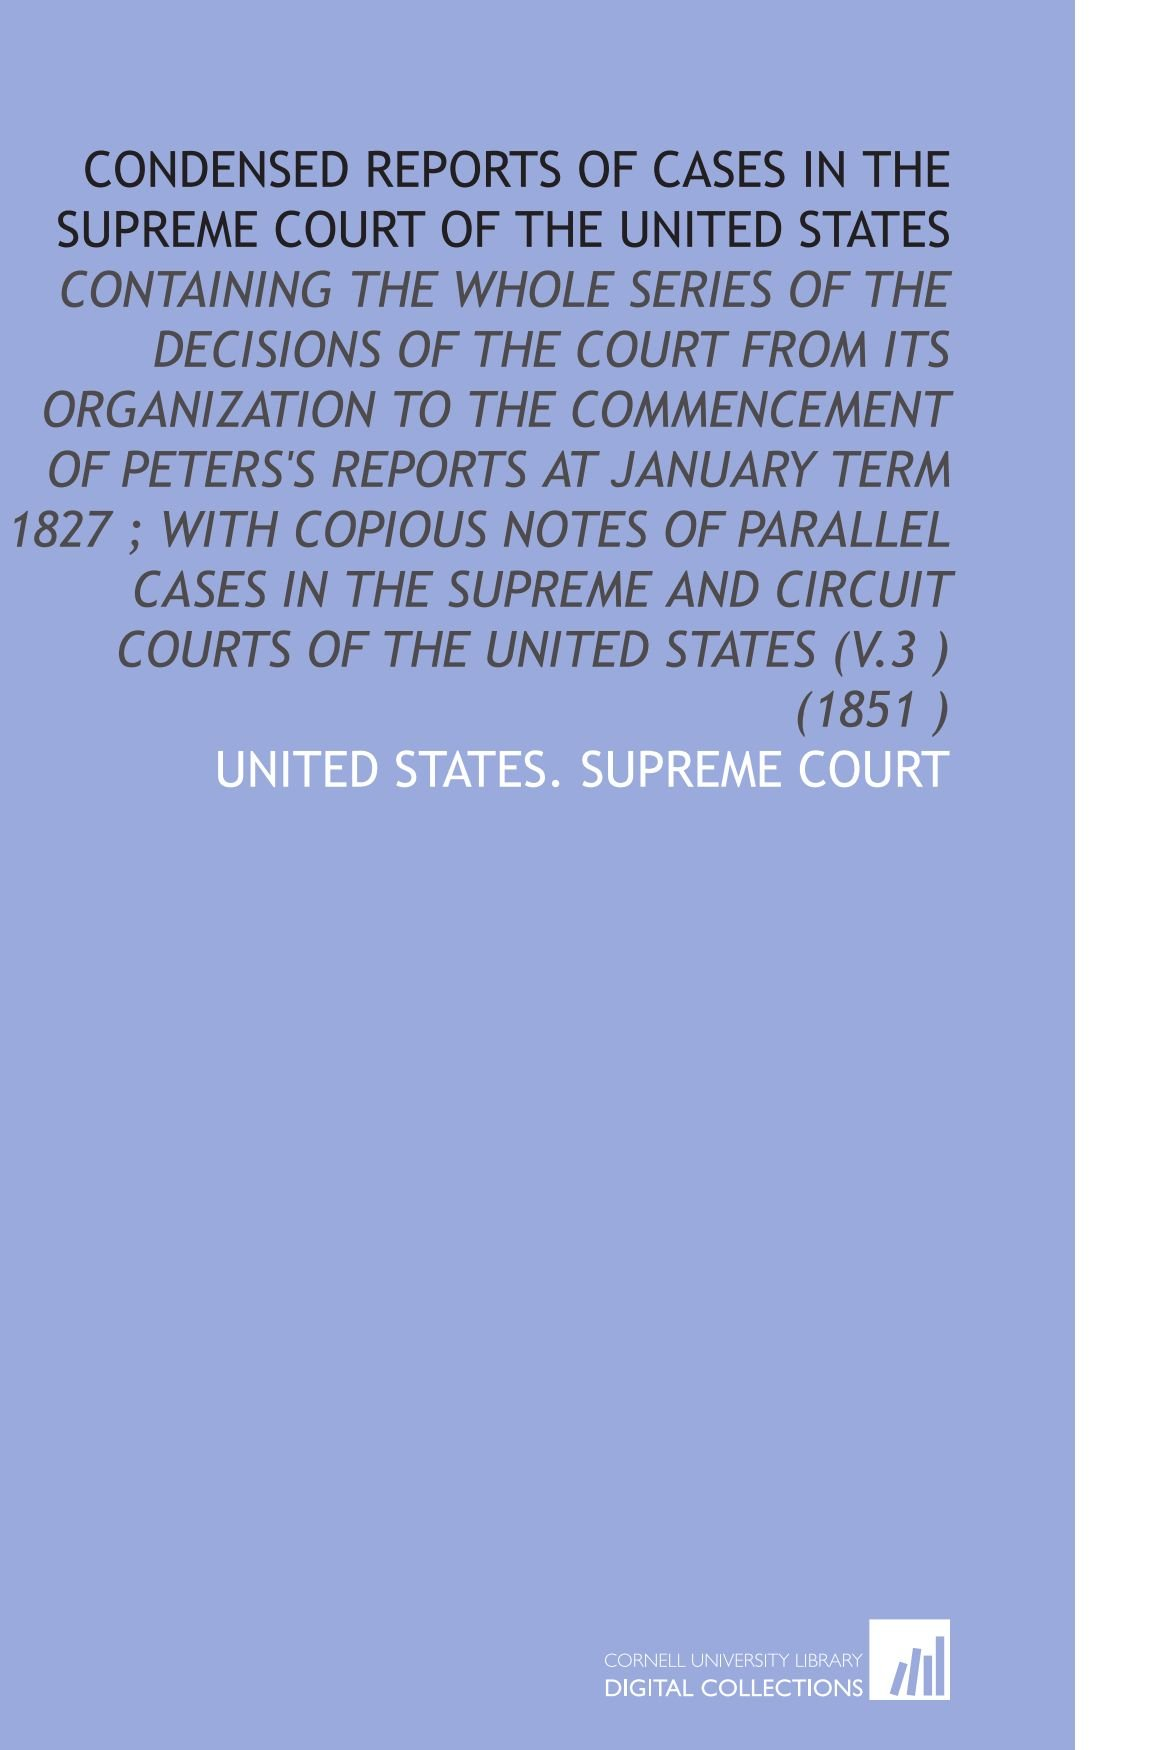 Download Condensed Reports of Cases in the Supreme Court of the United States: Containing the Whole Series of the Decisions of the Court From Its Organization ... Courts of the United States (V.3 ) (1851 ) ebook